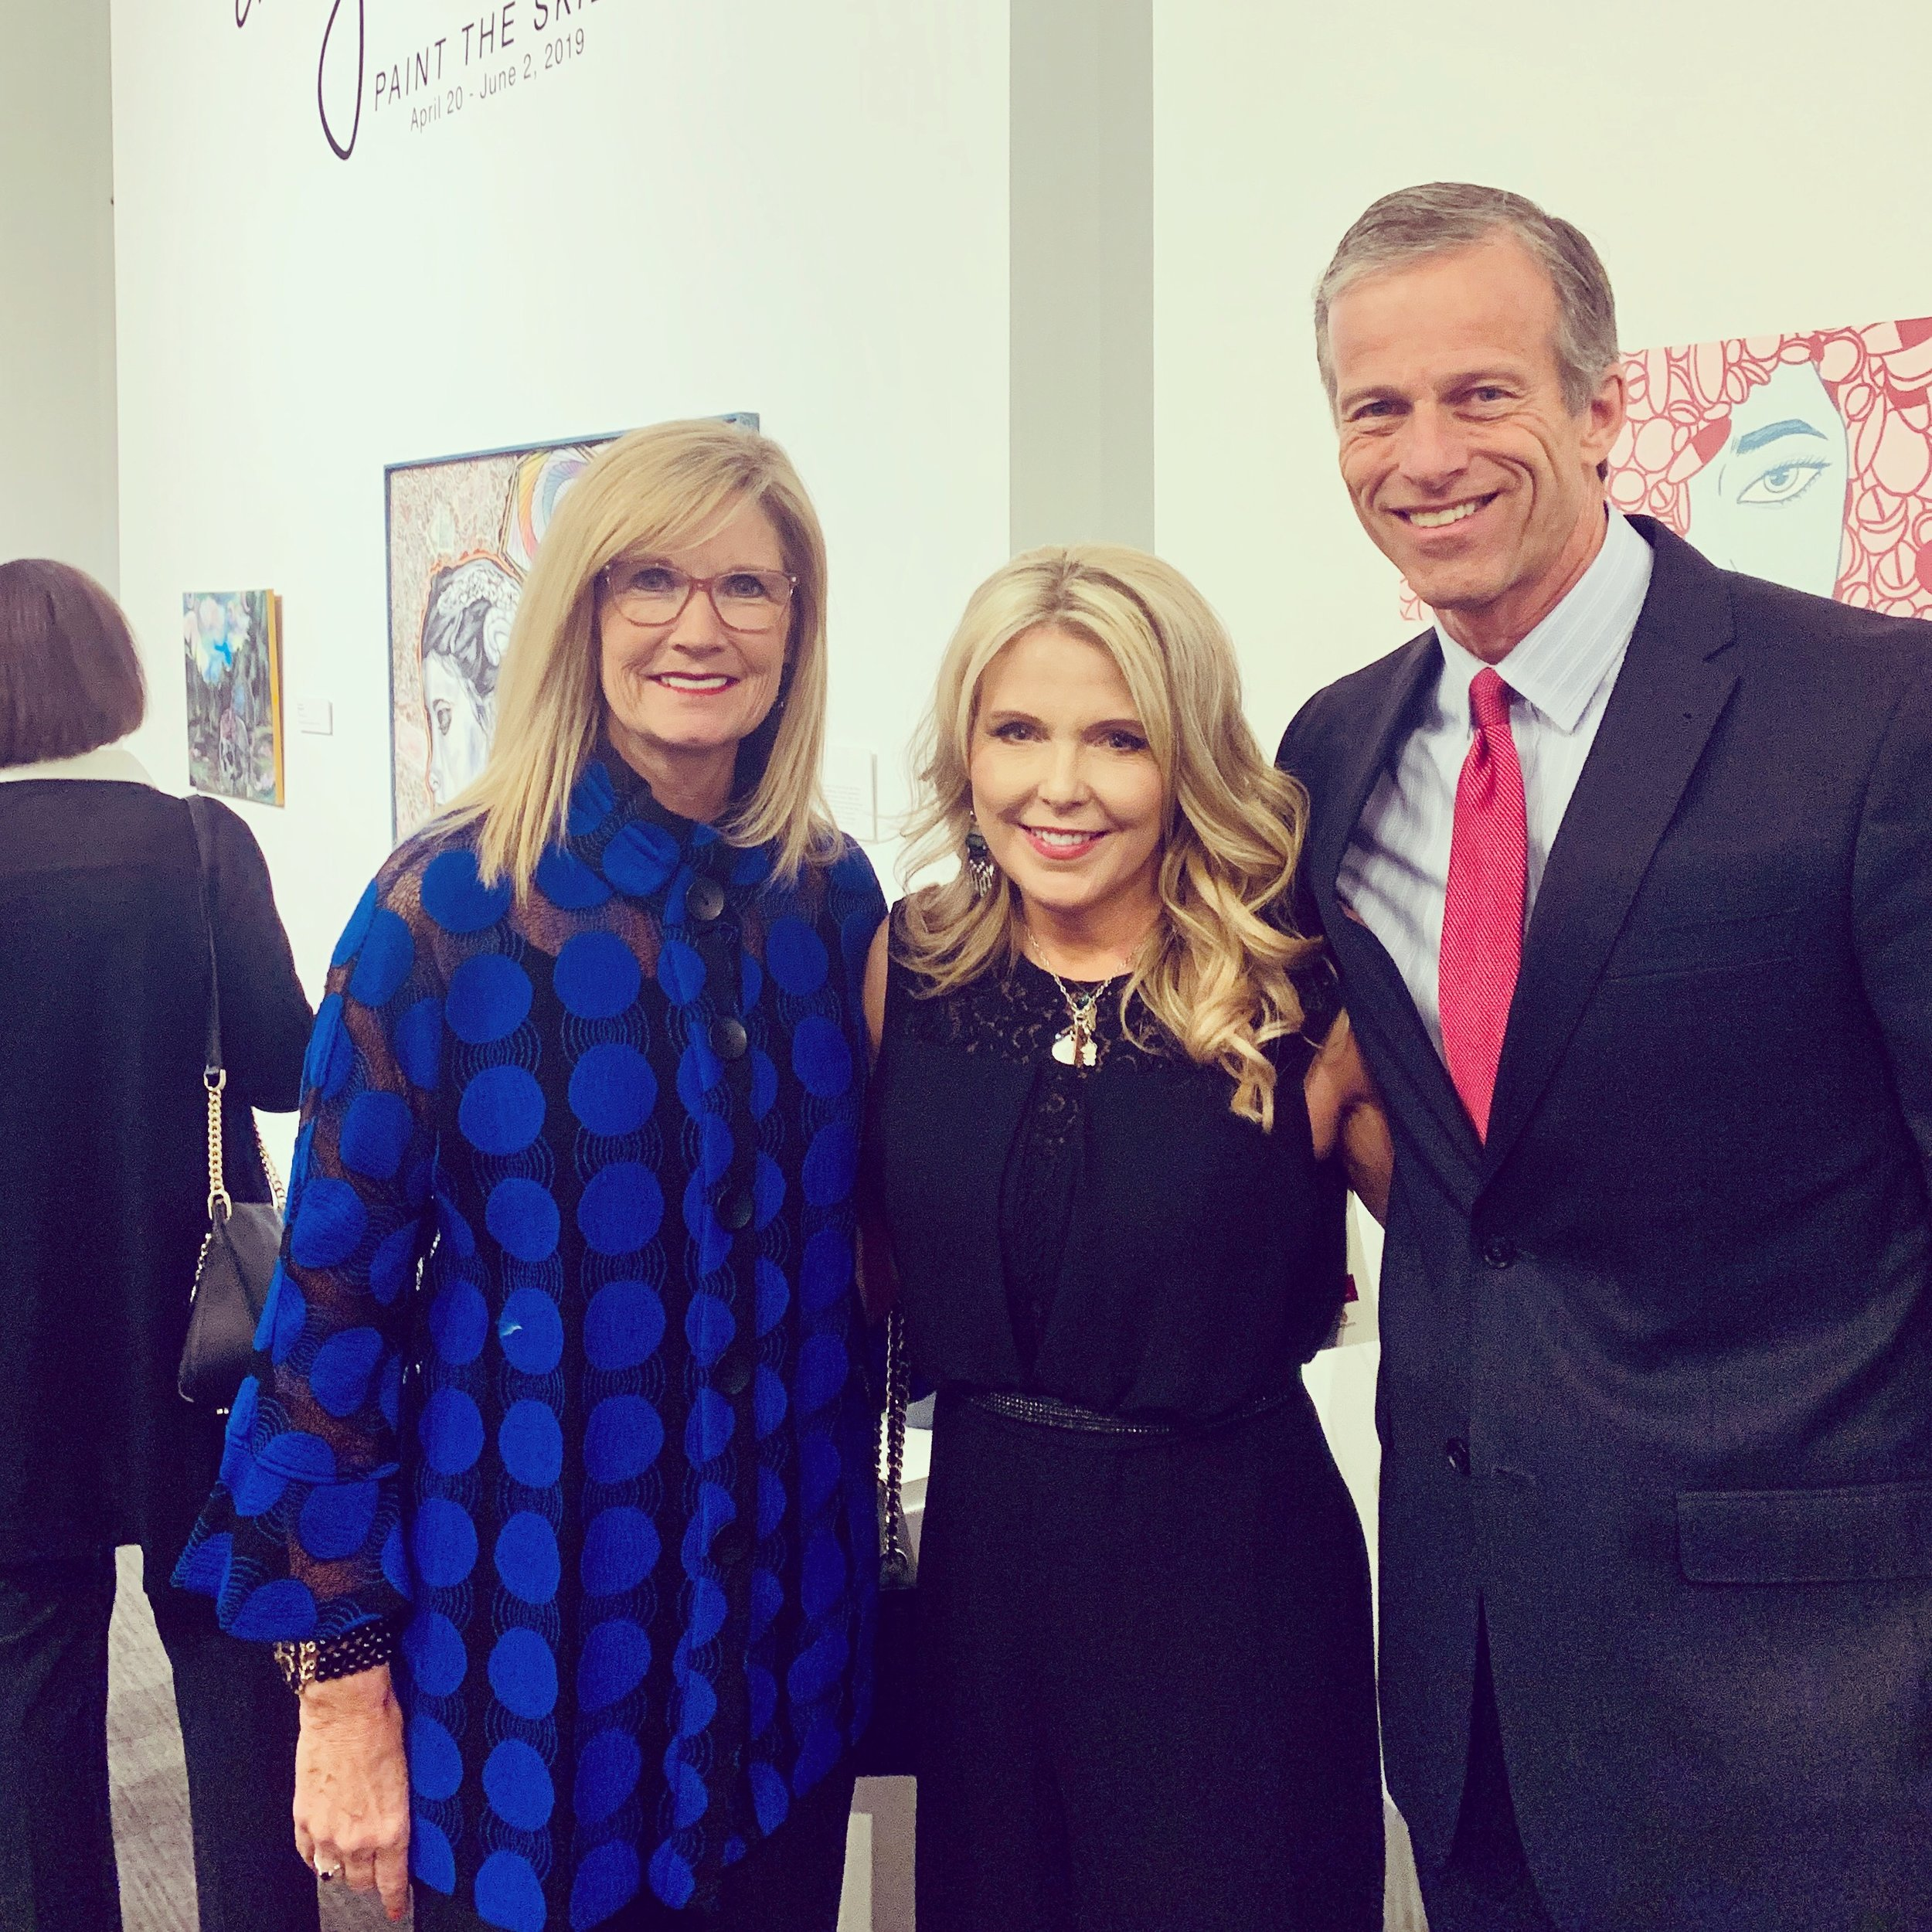 With Senator John Thune & Kimberly Thune